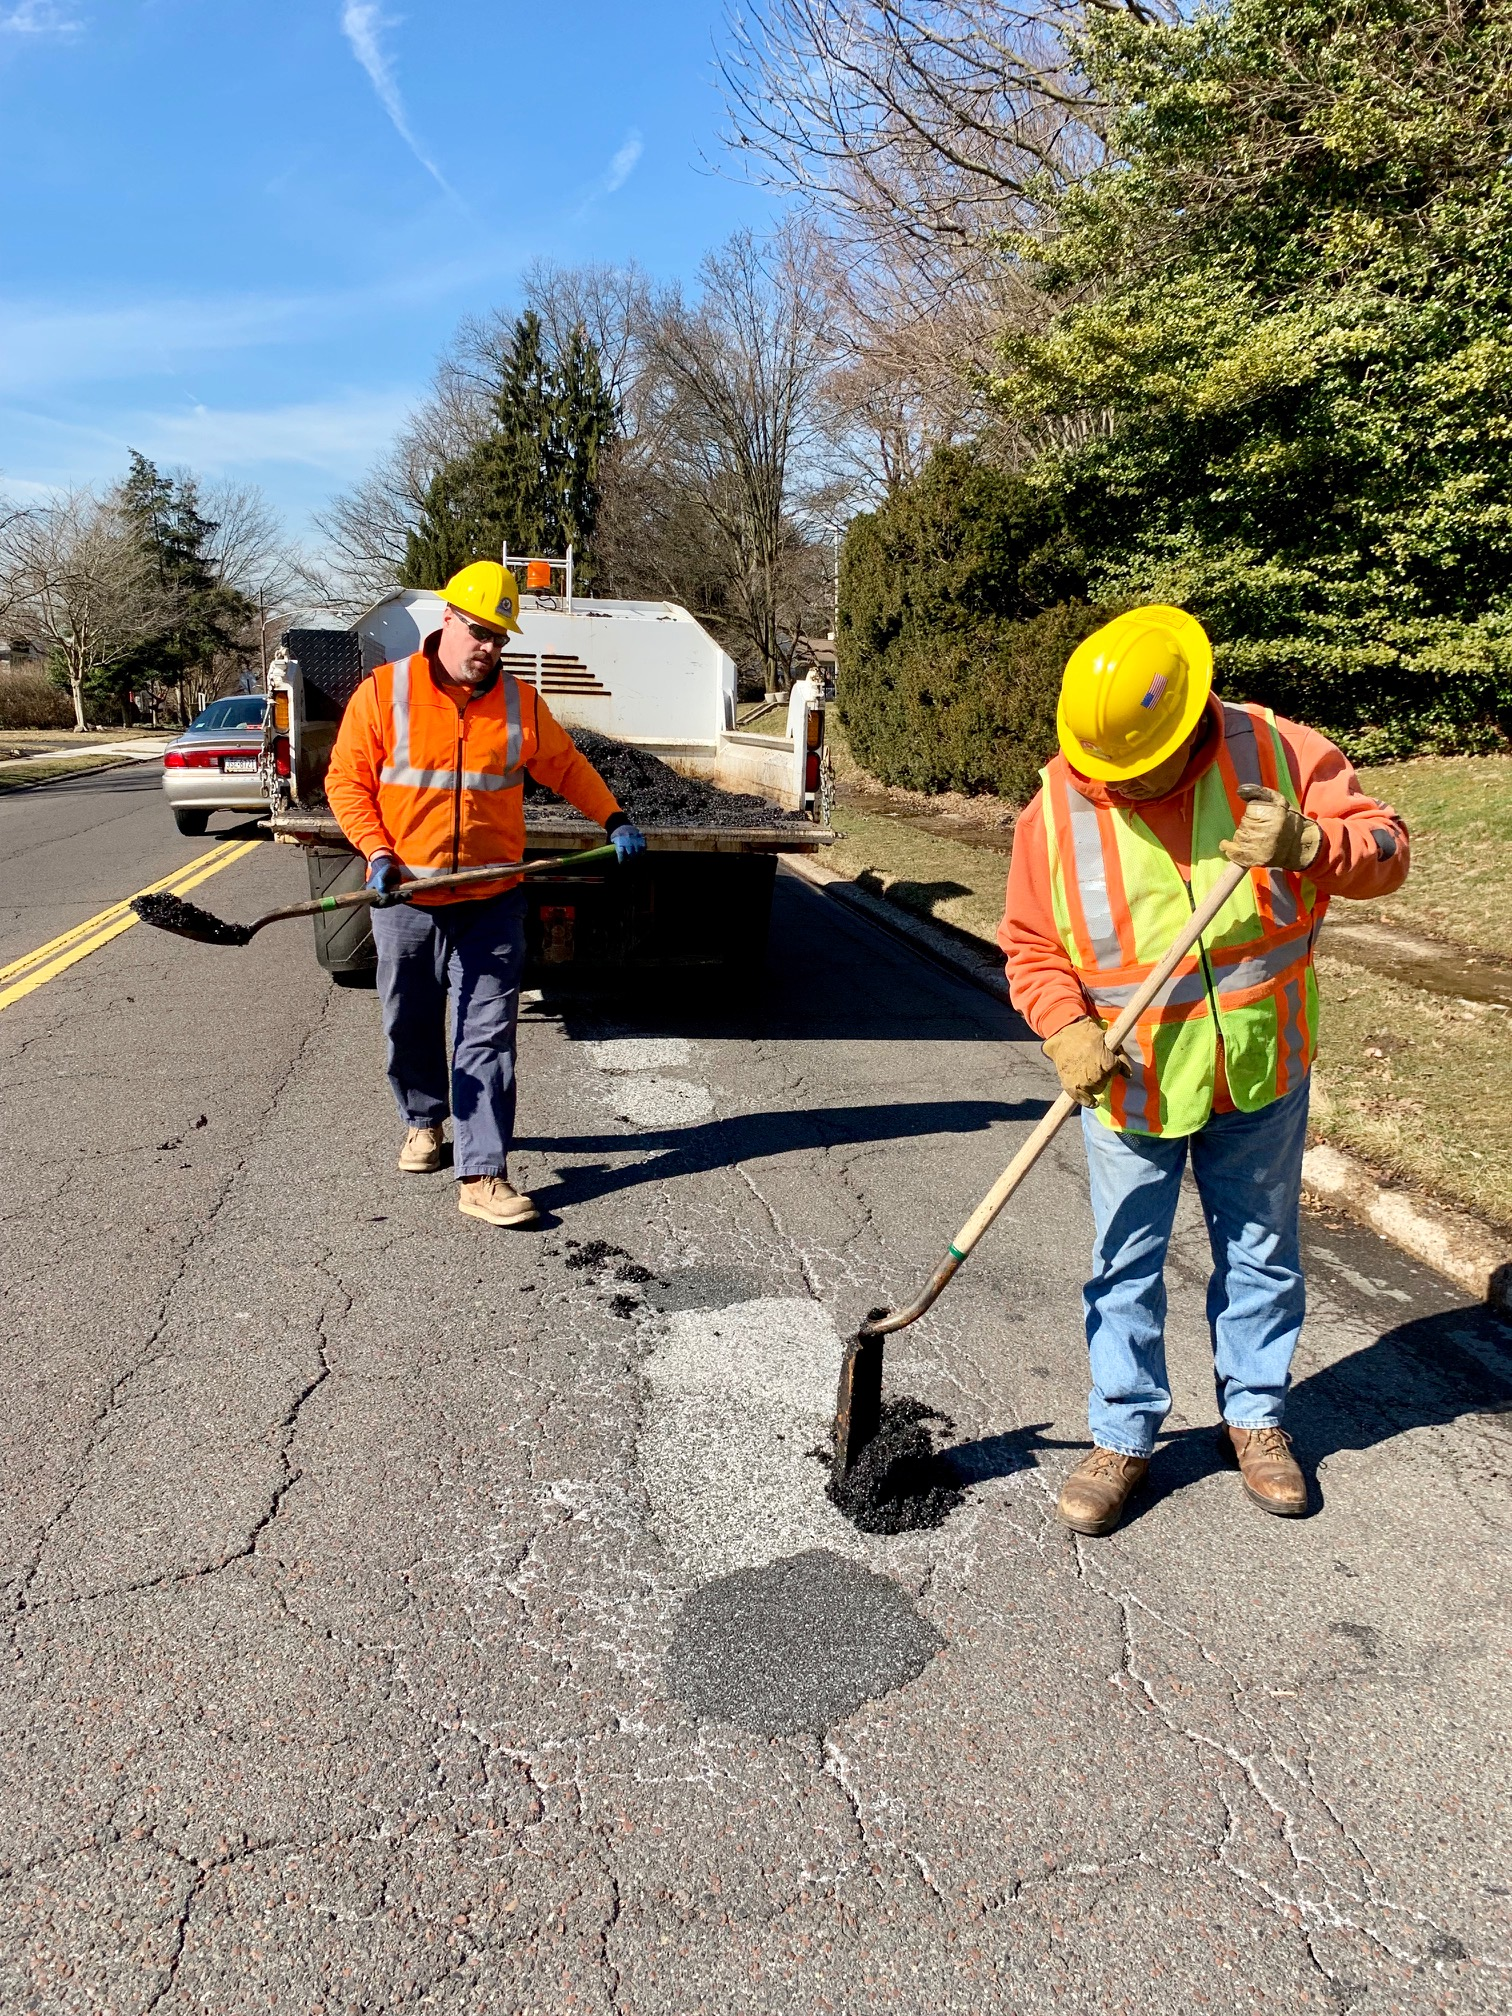 Public Works workers filling in pothole on road.